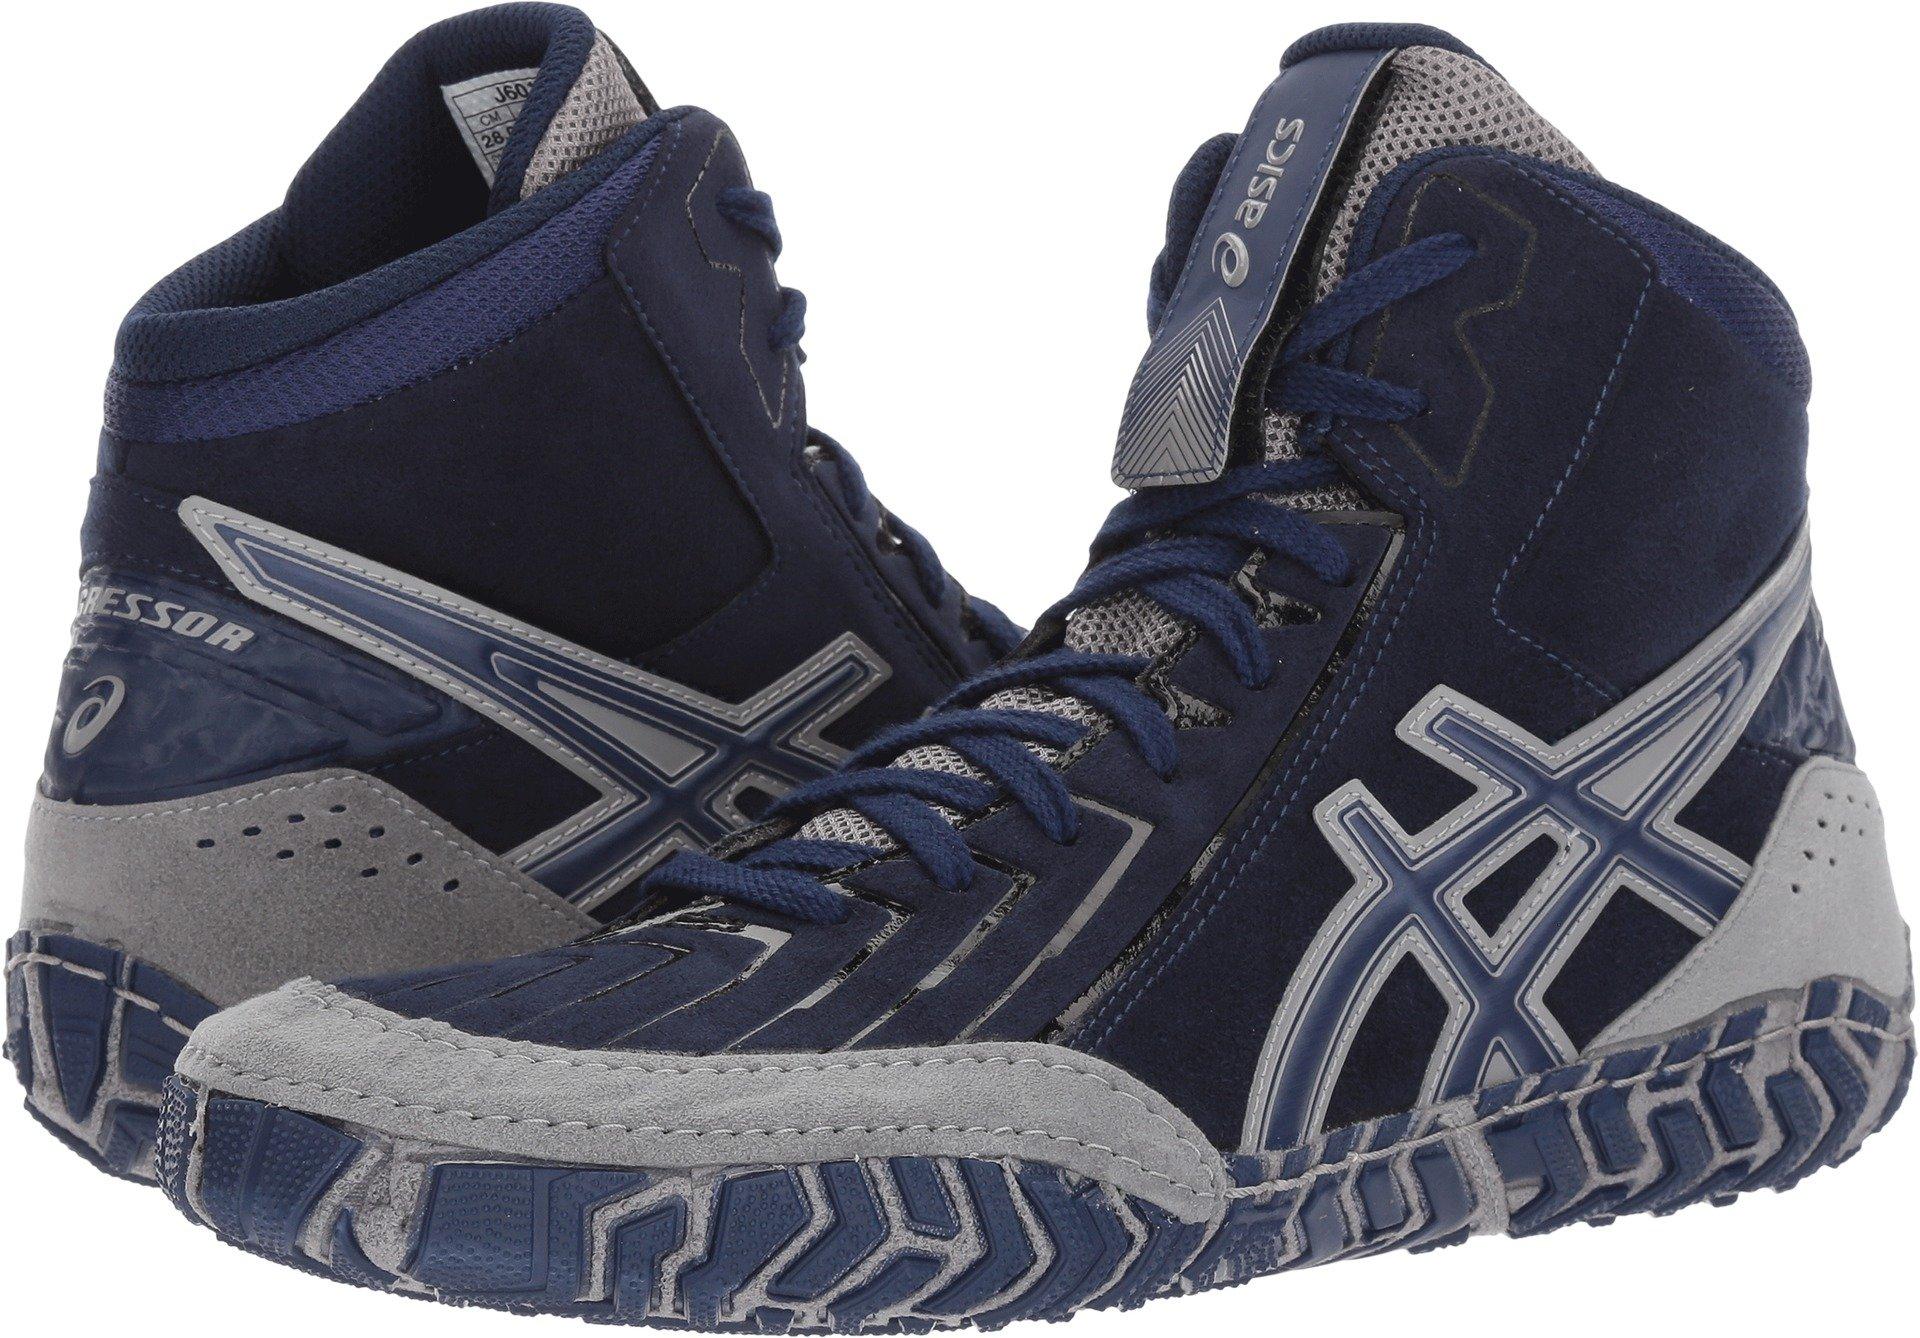 ASICS Men's Aggressor 3 Wrestling-Shoes, Indigo Blue/Indigo Blue/Aluminum, 9.5 Medium US